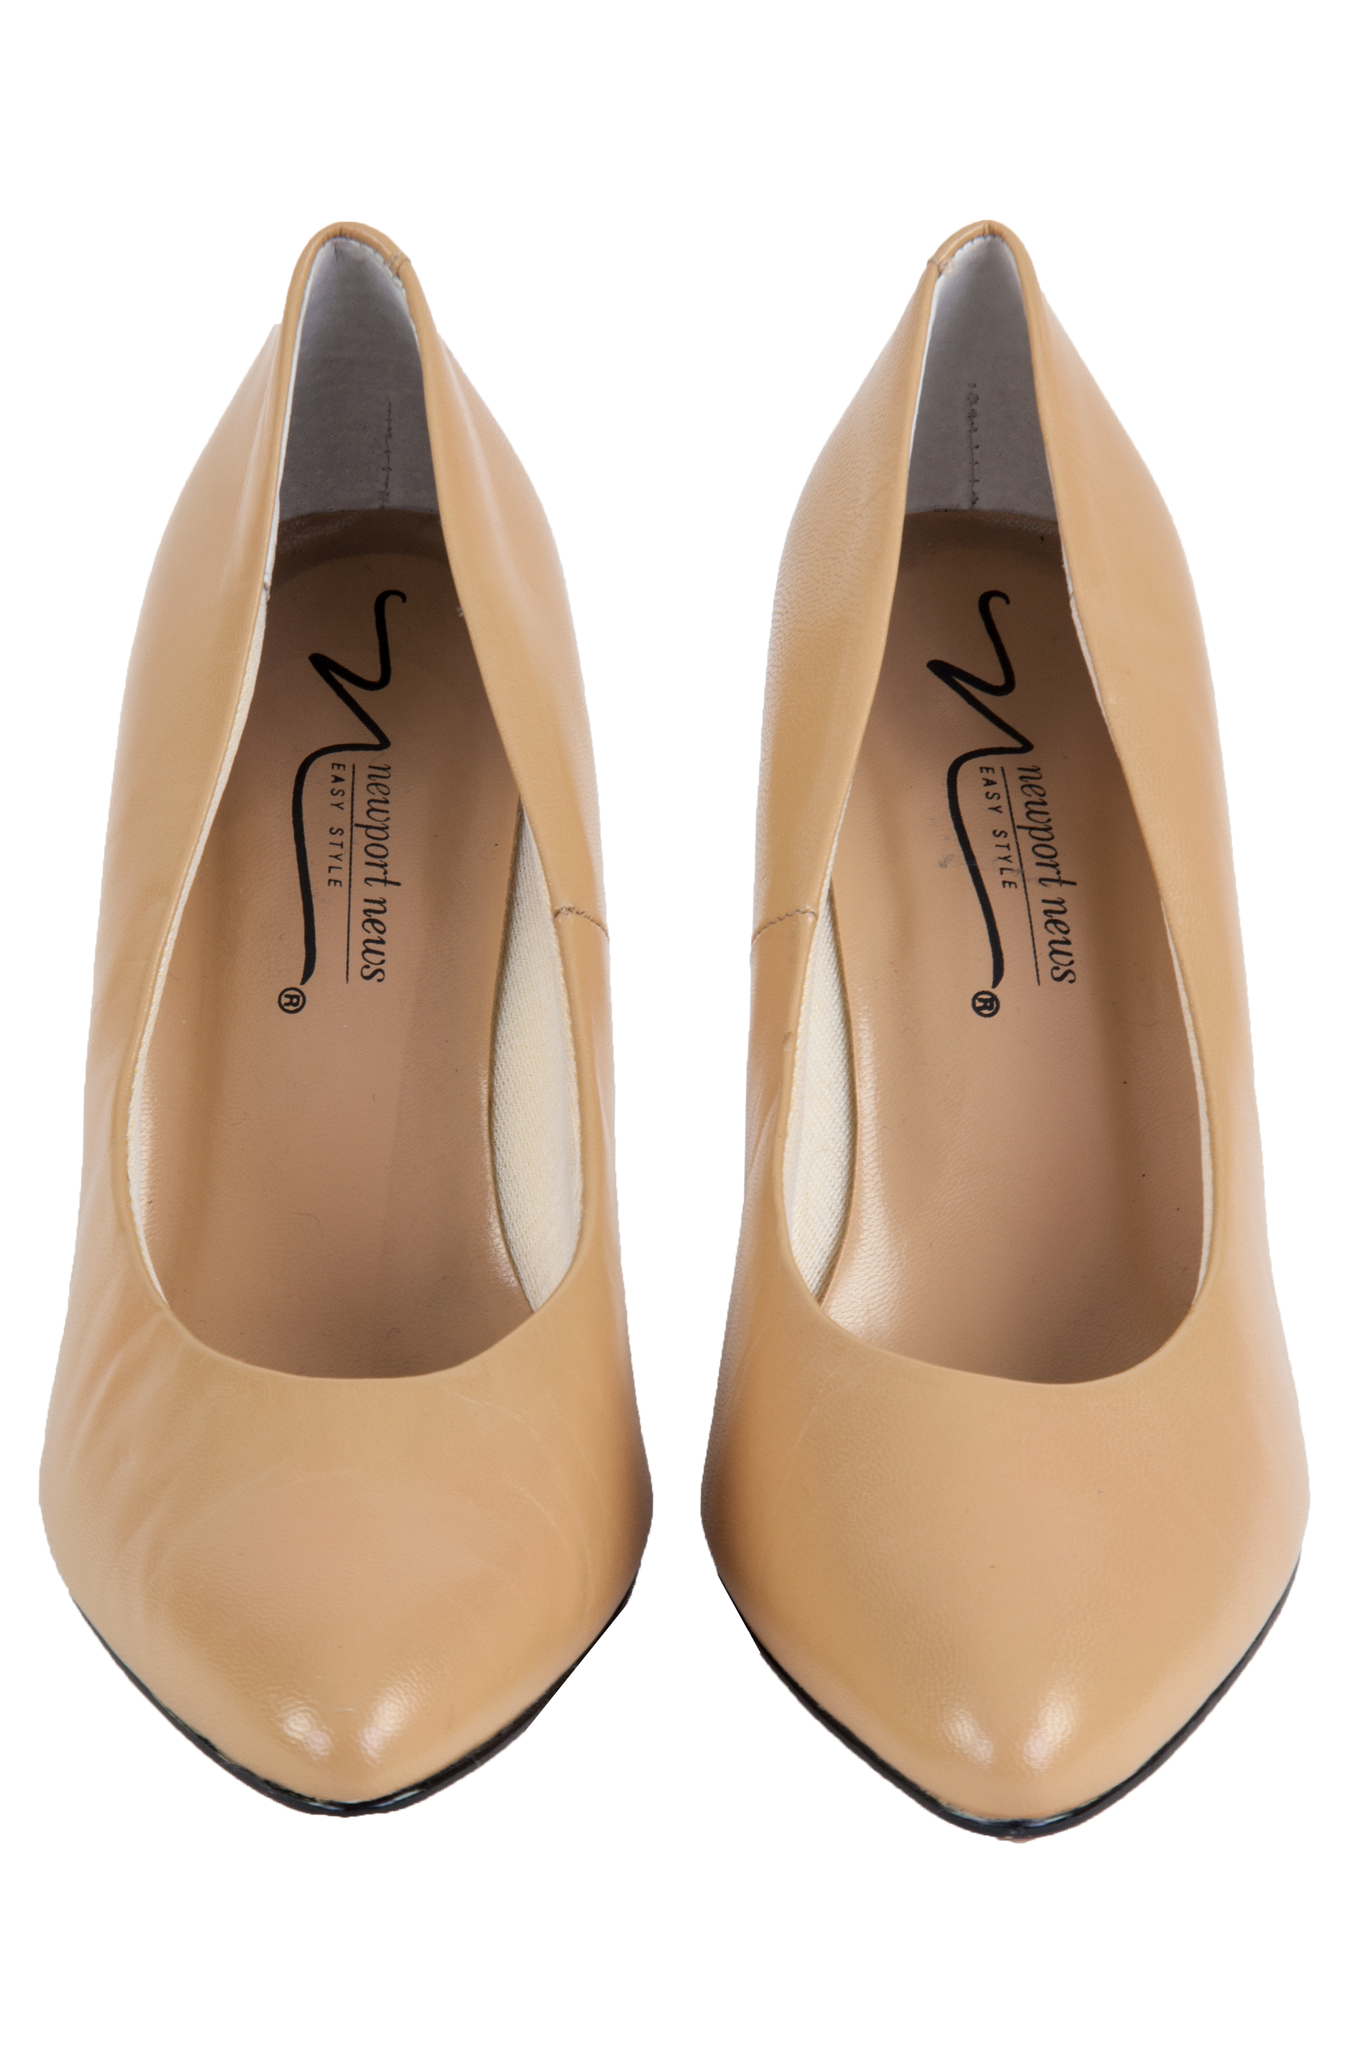 tan high heels with pointed toe